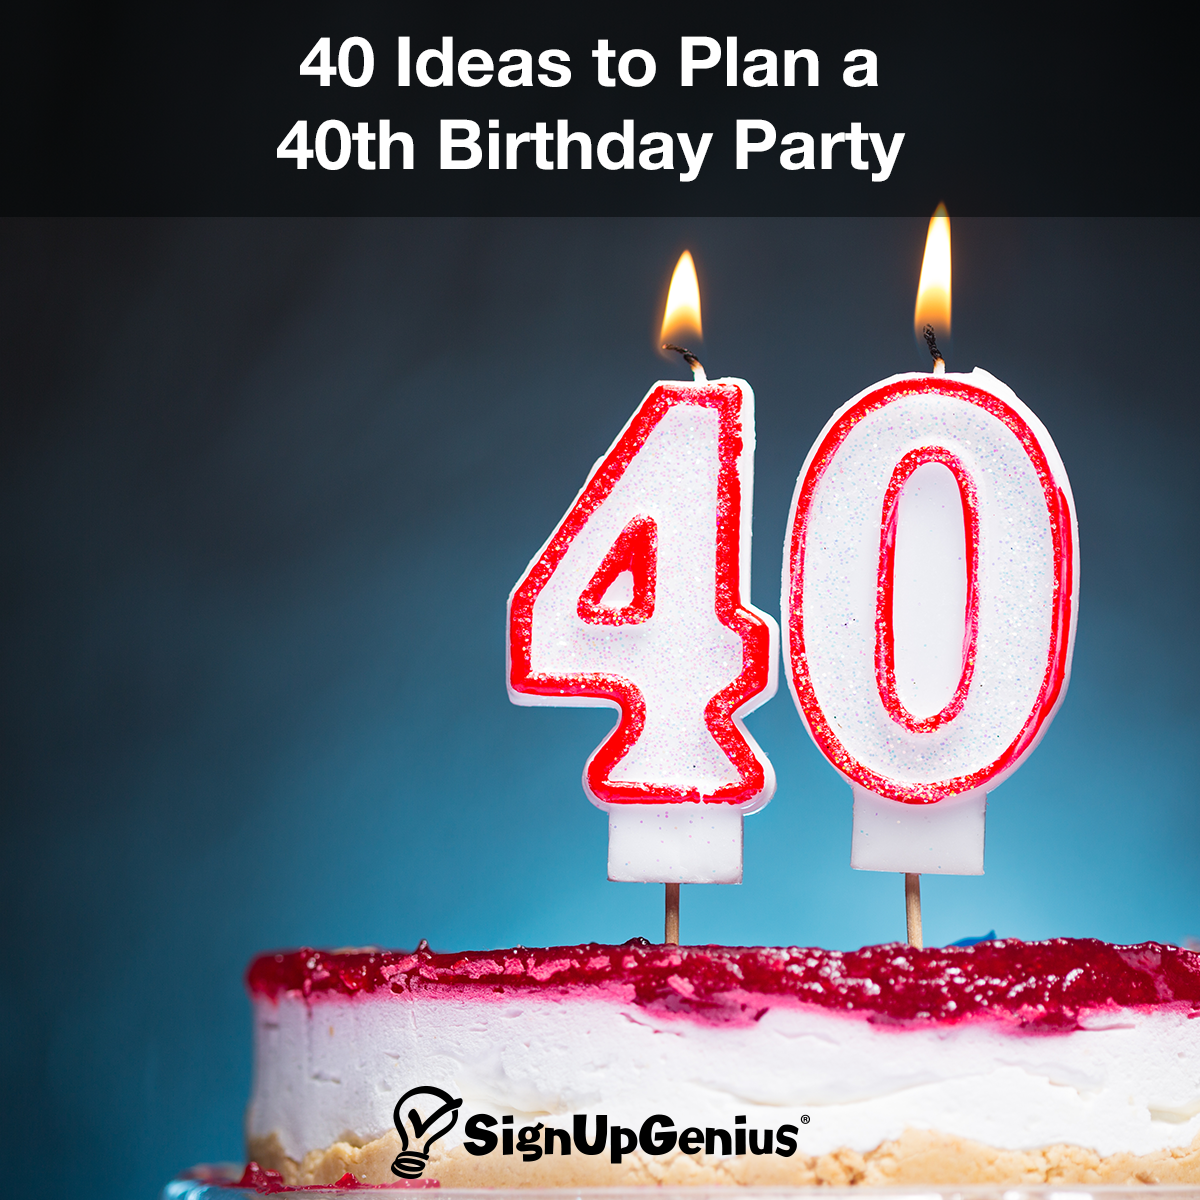 40 Ideas To Plan A 40th Birthday Party. Get Creative Ideas